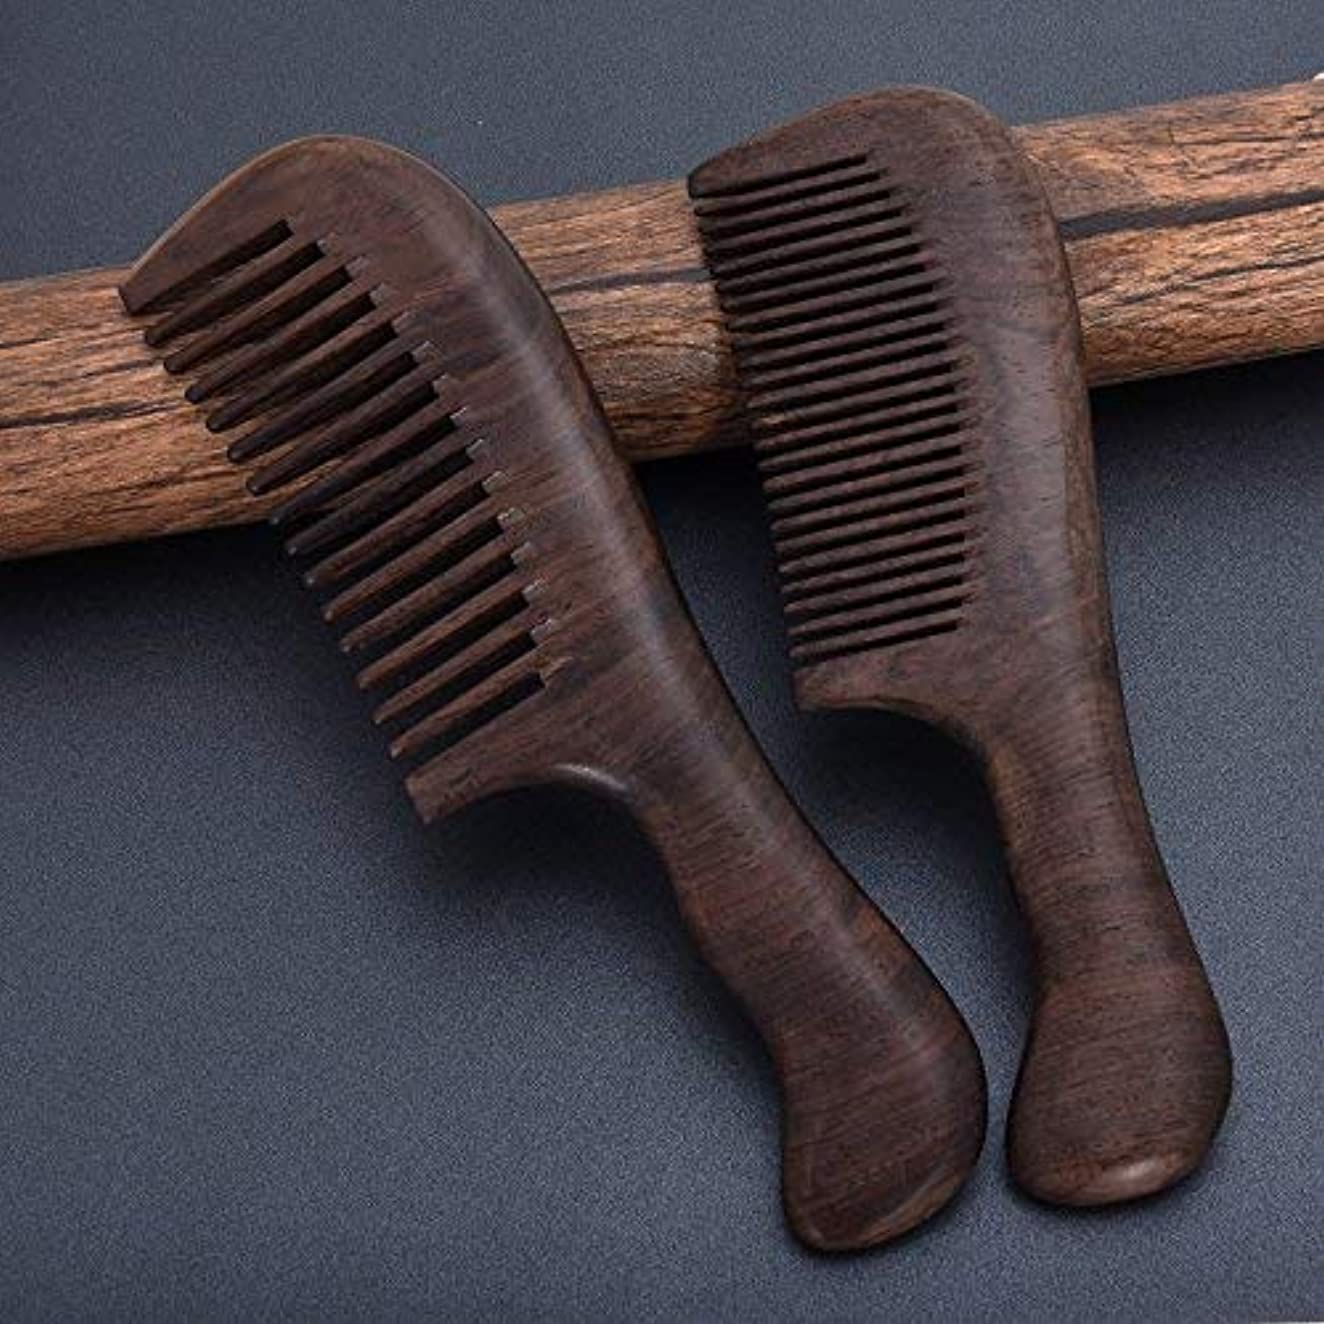 産地溶接学生Black Sandalwood Hair Comb, Pack of 2 Anti-static 8 inches Wooden Comb Set with Natural Aroma, A Standard Comb...